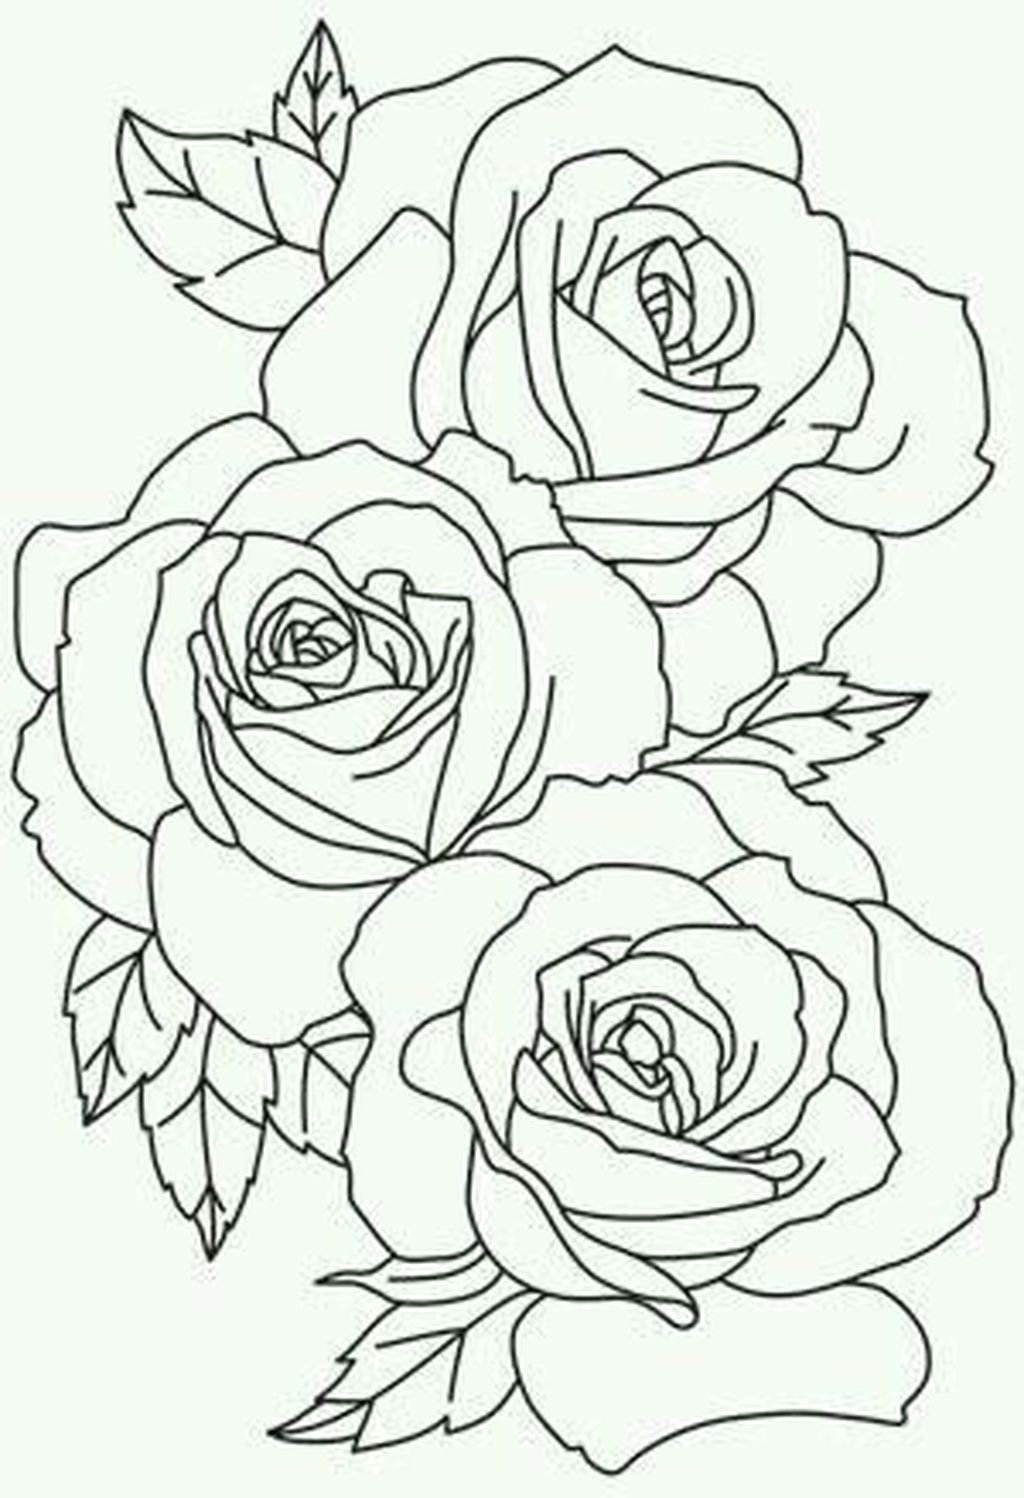 10 Awesome Flower Tattoos Ideas For Valentines Day  Rose tattoo